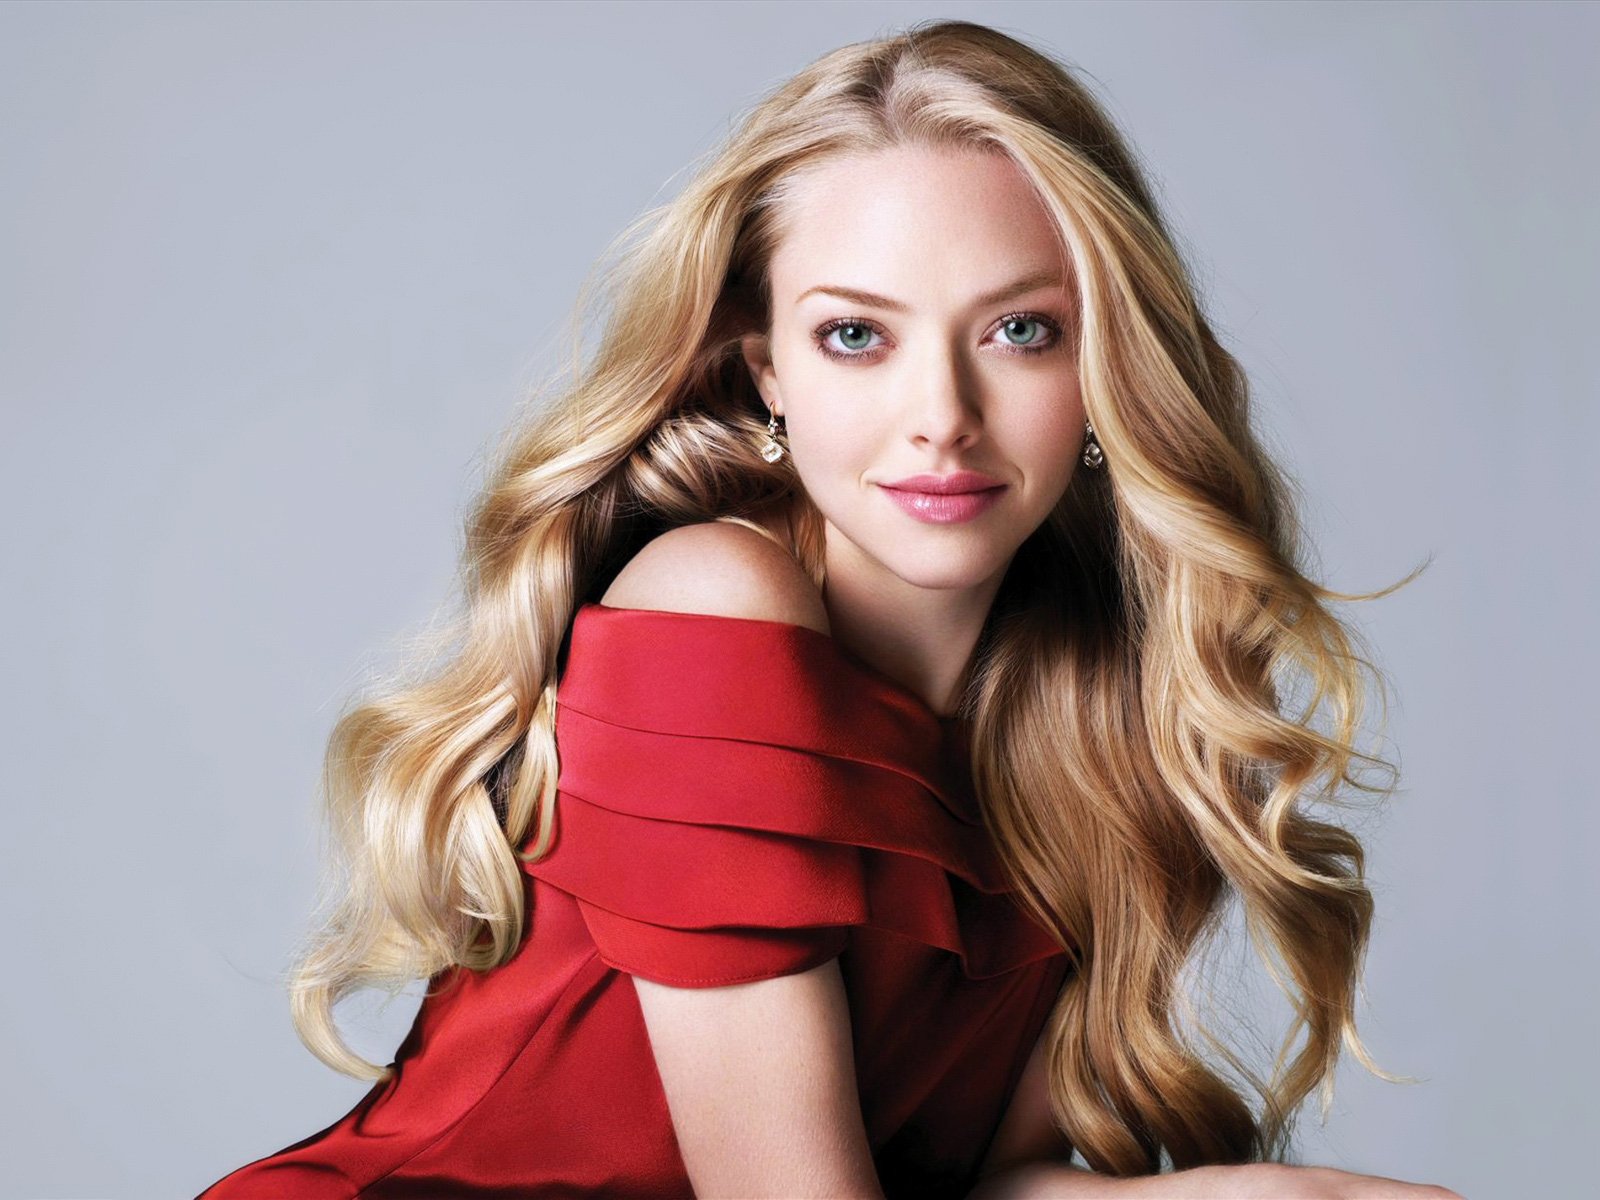 Amanda Seyfried Beautiful wallpaper